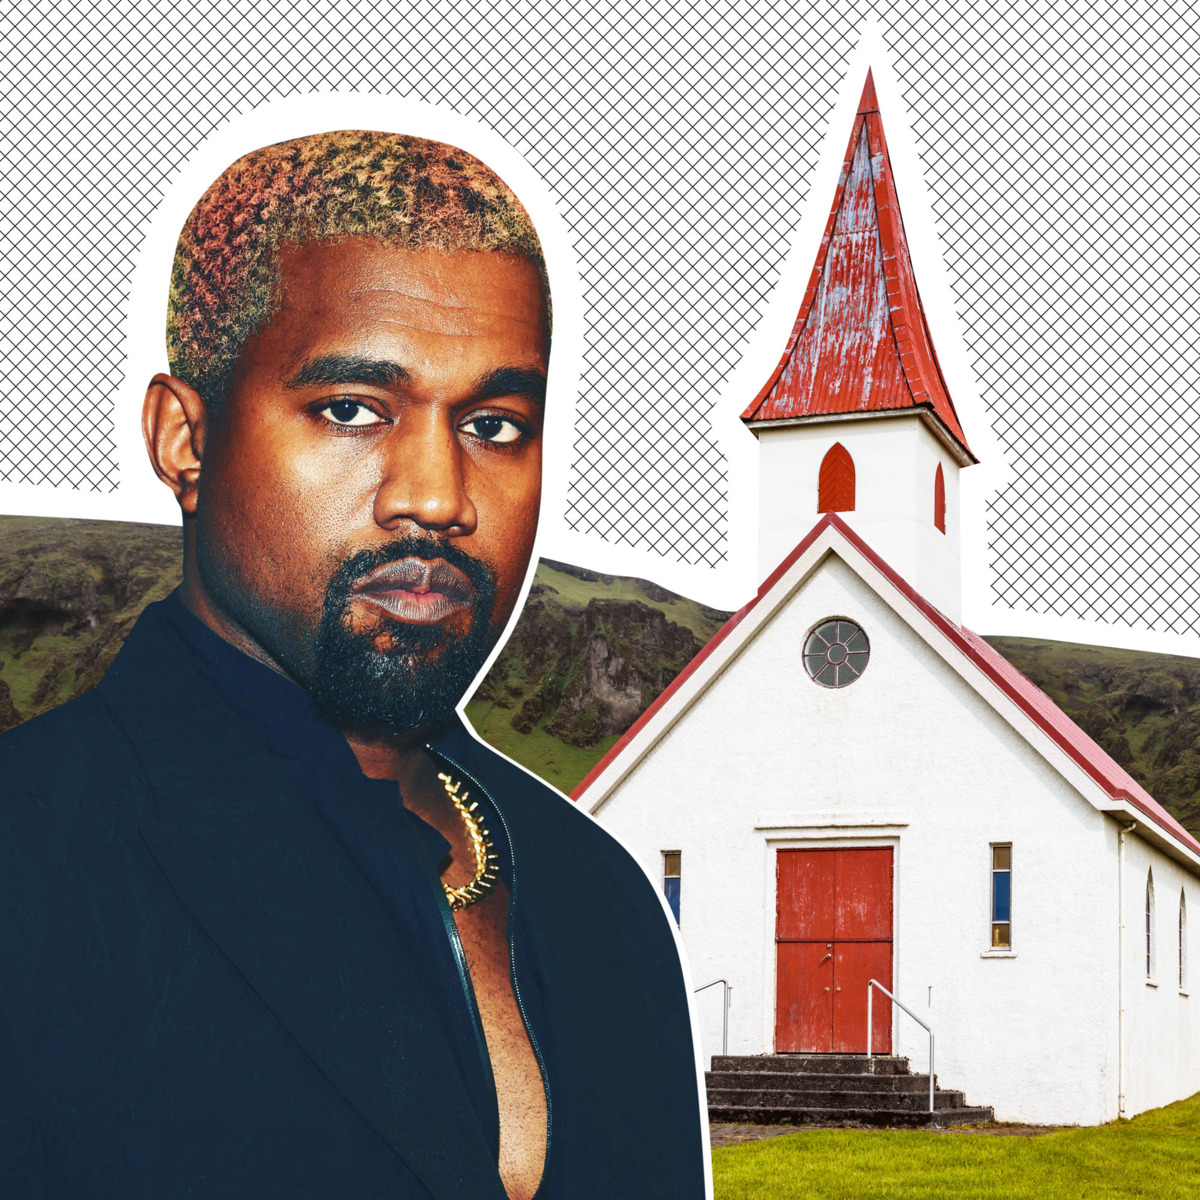 Does Kanye Weset Have a Church Service?